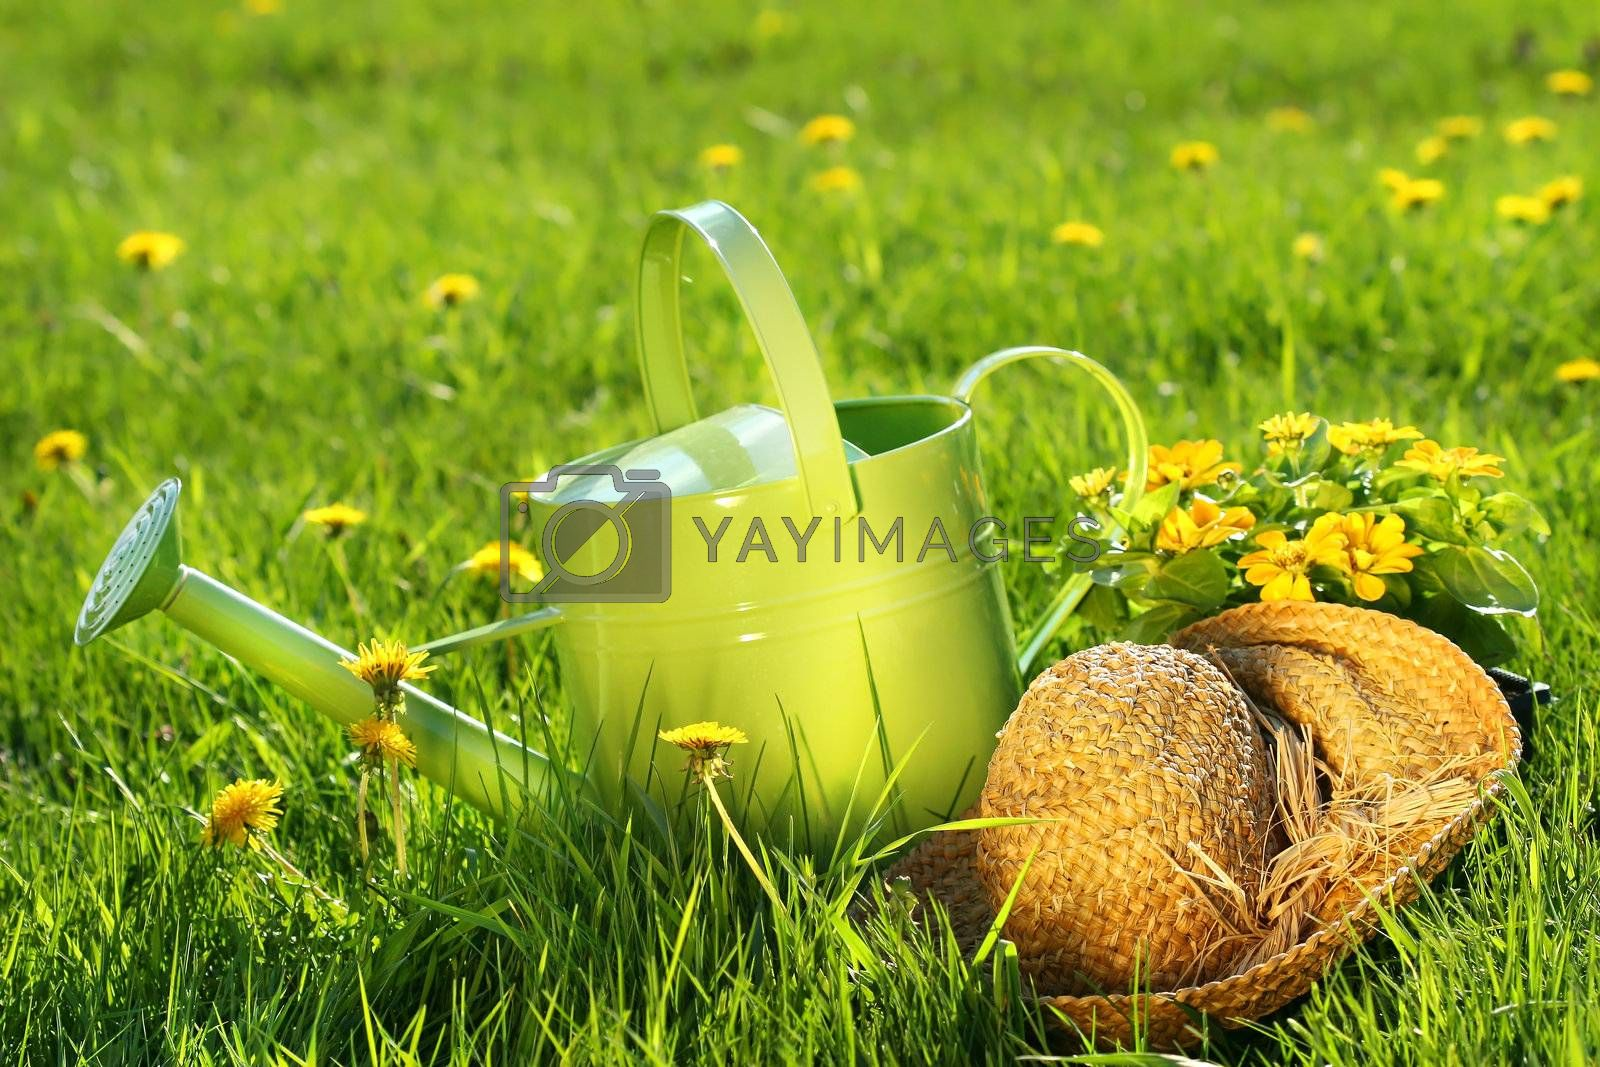 Watering can in the grass by Sandralise